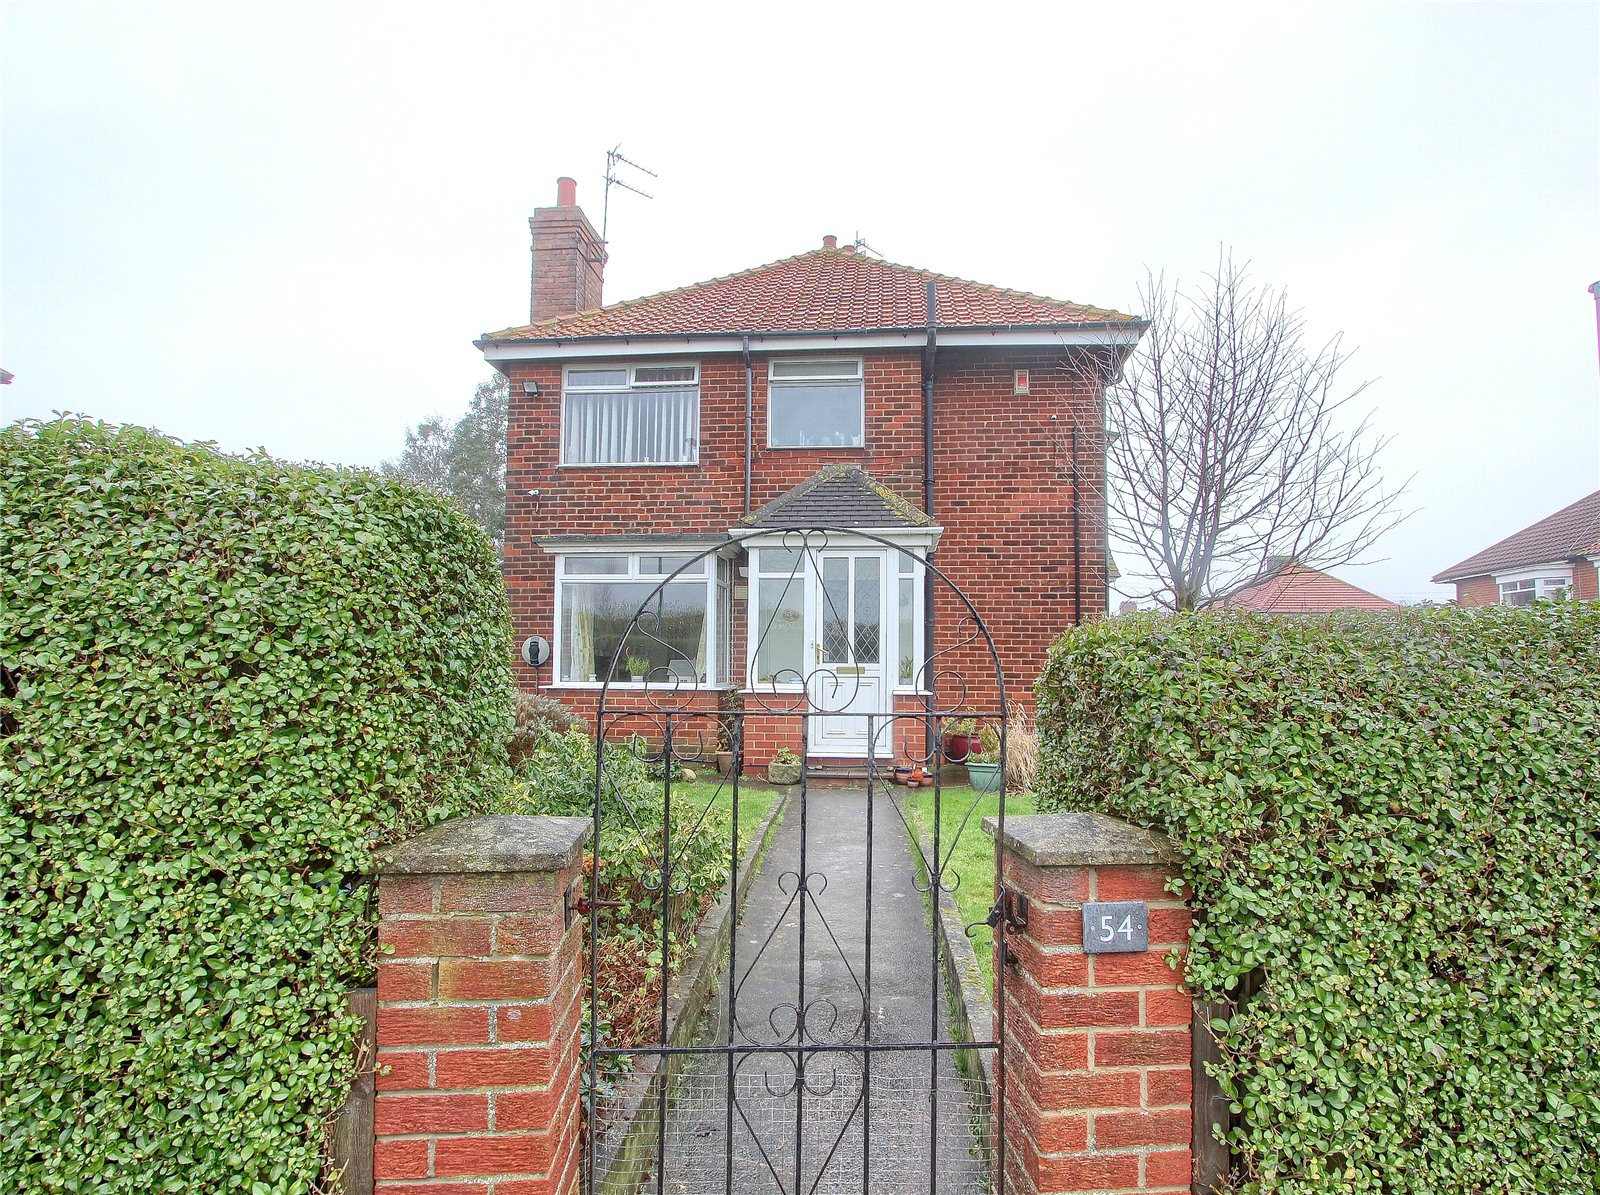 3 bed house for sale in Windy Hill Lane, Marske-by-the-Sea  - Property Image 1